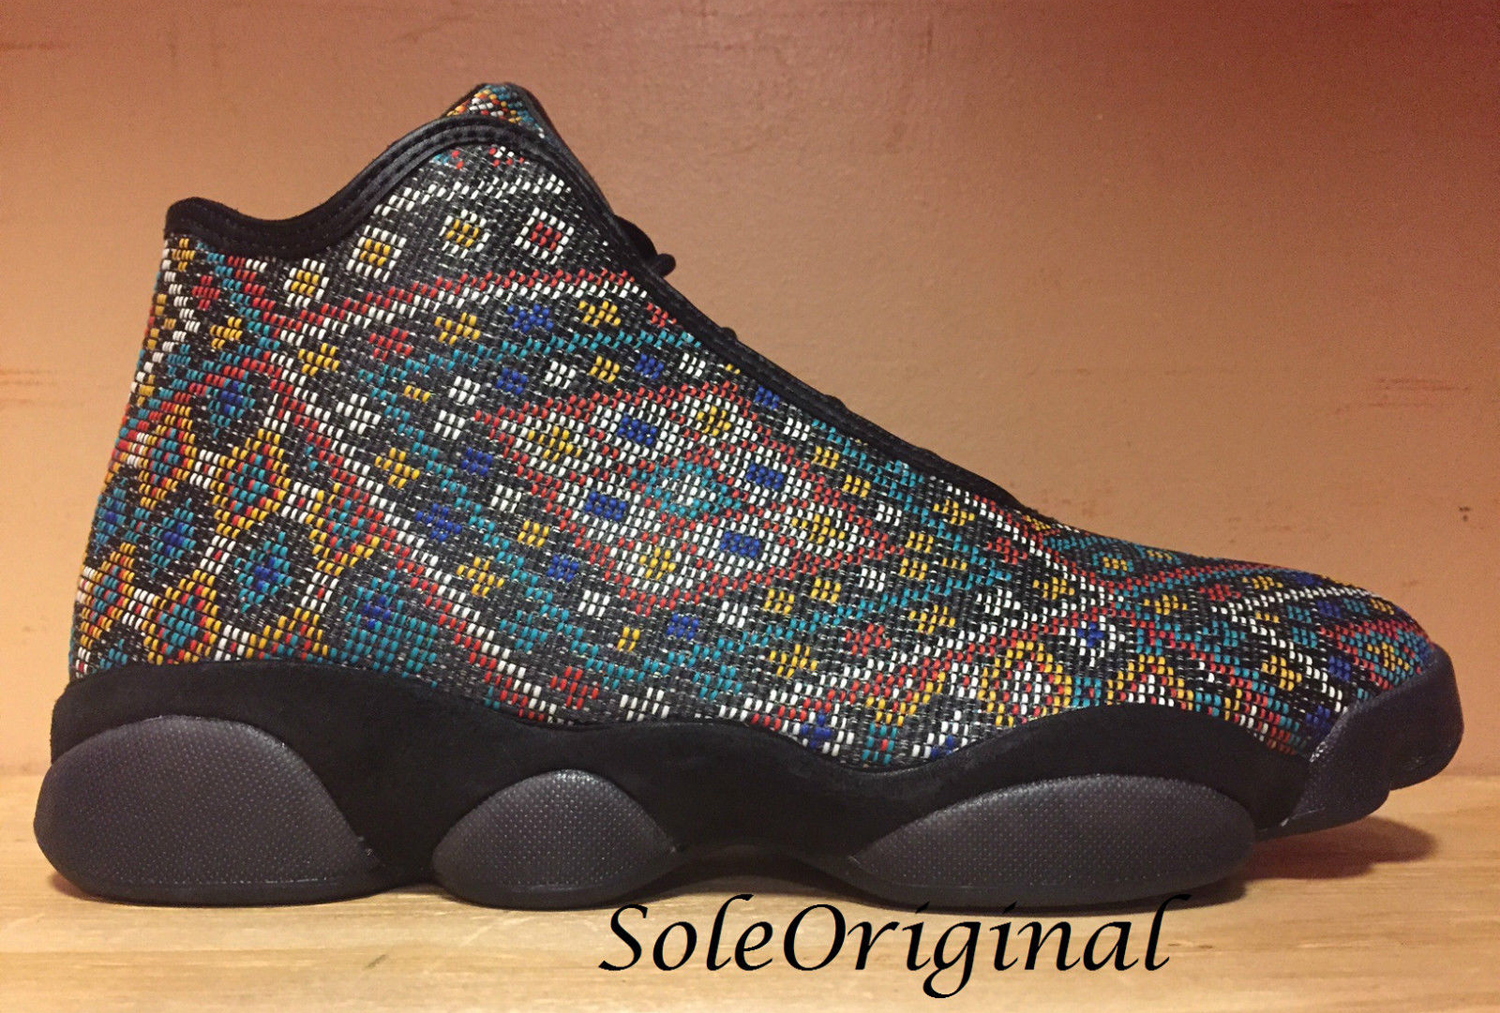 There S Another Pair Of All Star Jordans Coming Sole Collector